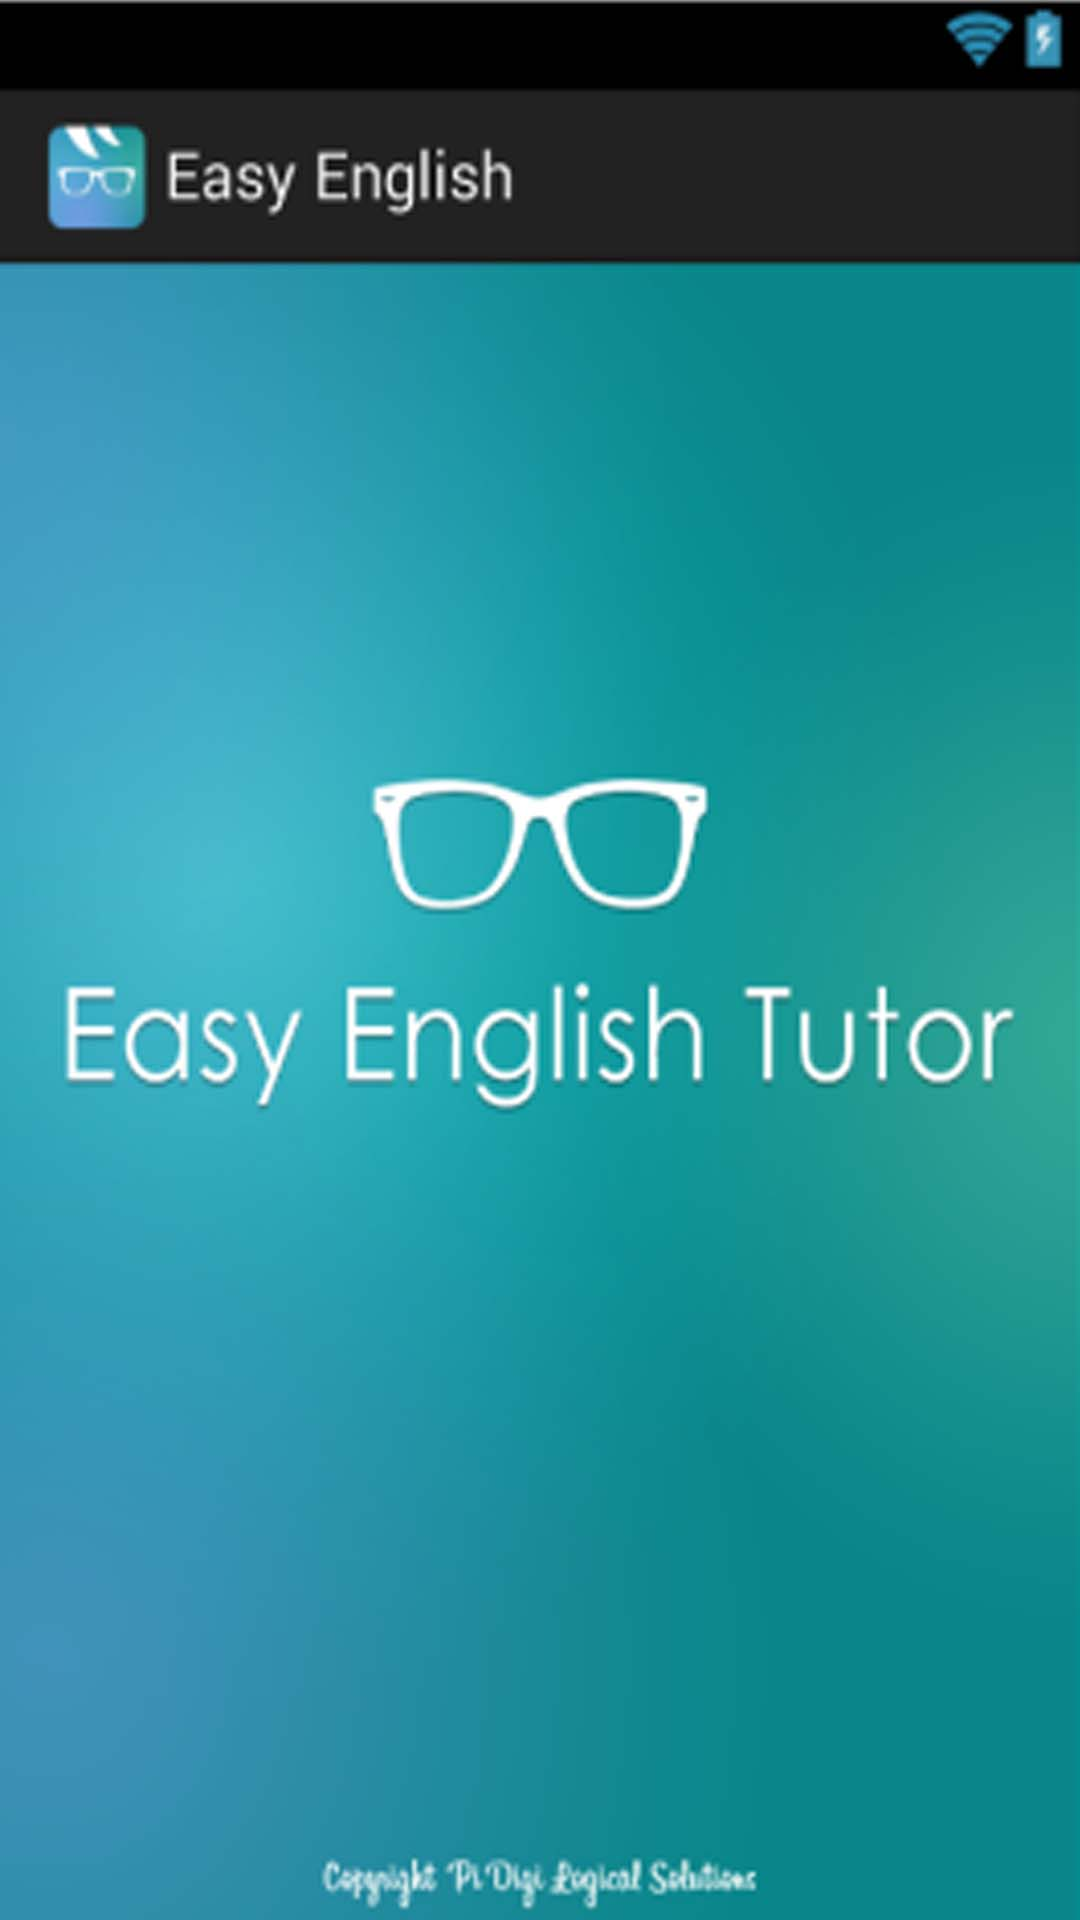 tutor essay Our tutors can help you write a book report, brainstorm ideas for a term paper or put the finishing touches on a college admissions essay one to-one help on your specific essay at tutorcom, you work one-to-one with an essay-writing tutor on whatever you need help with.